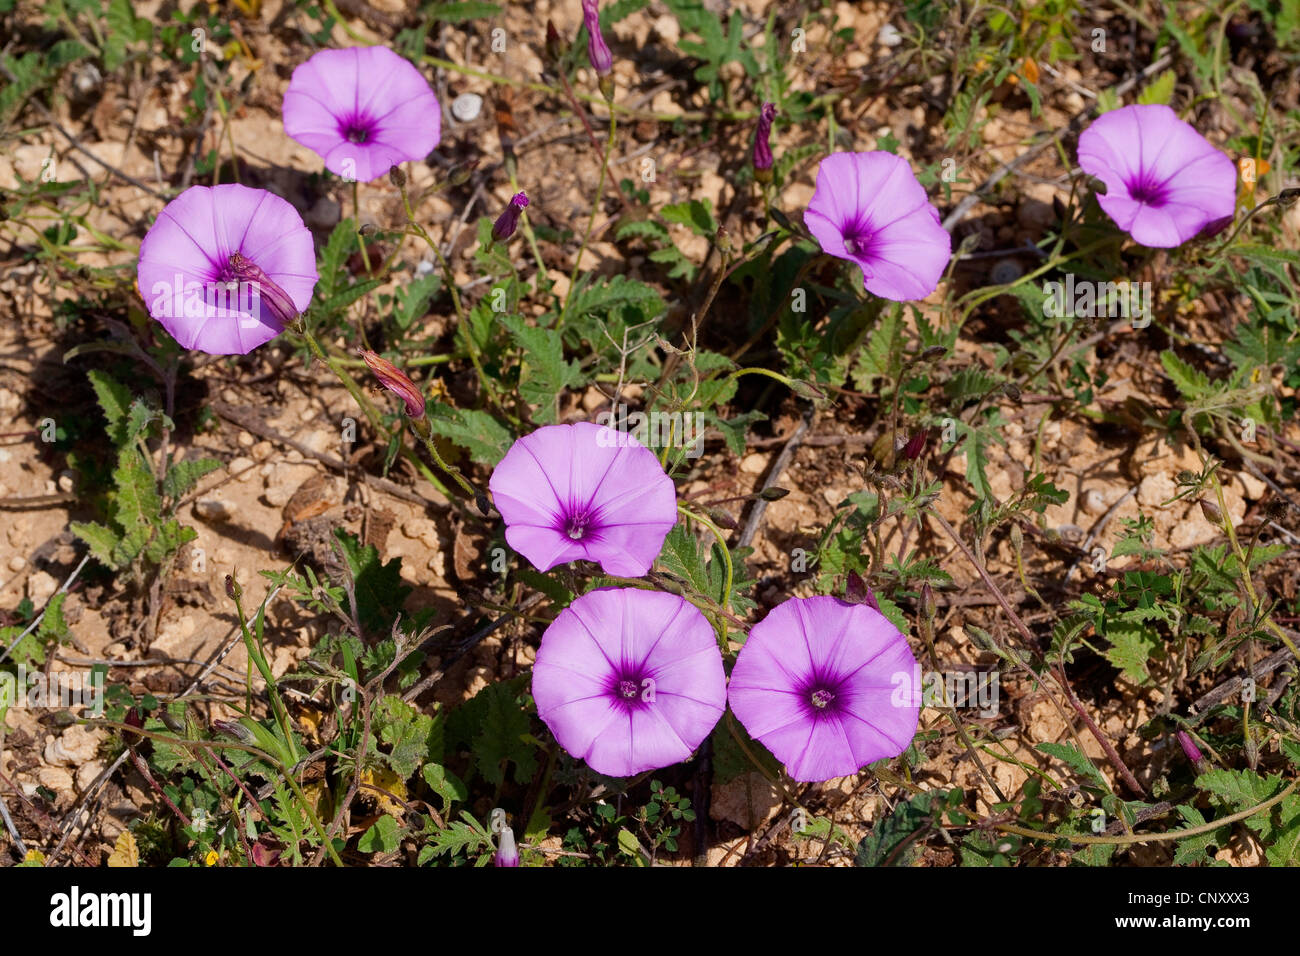 Mallow leaved bindweed, Mallow-leaved bindweed (Convolvulus althaeoides), blooming - Stock Image